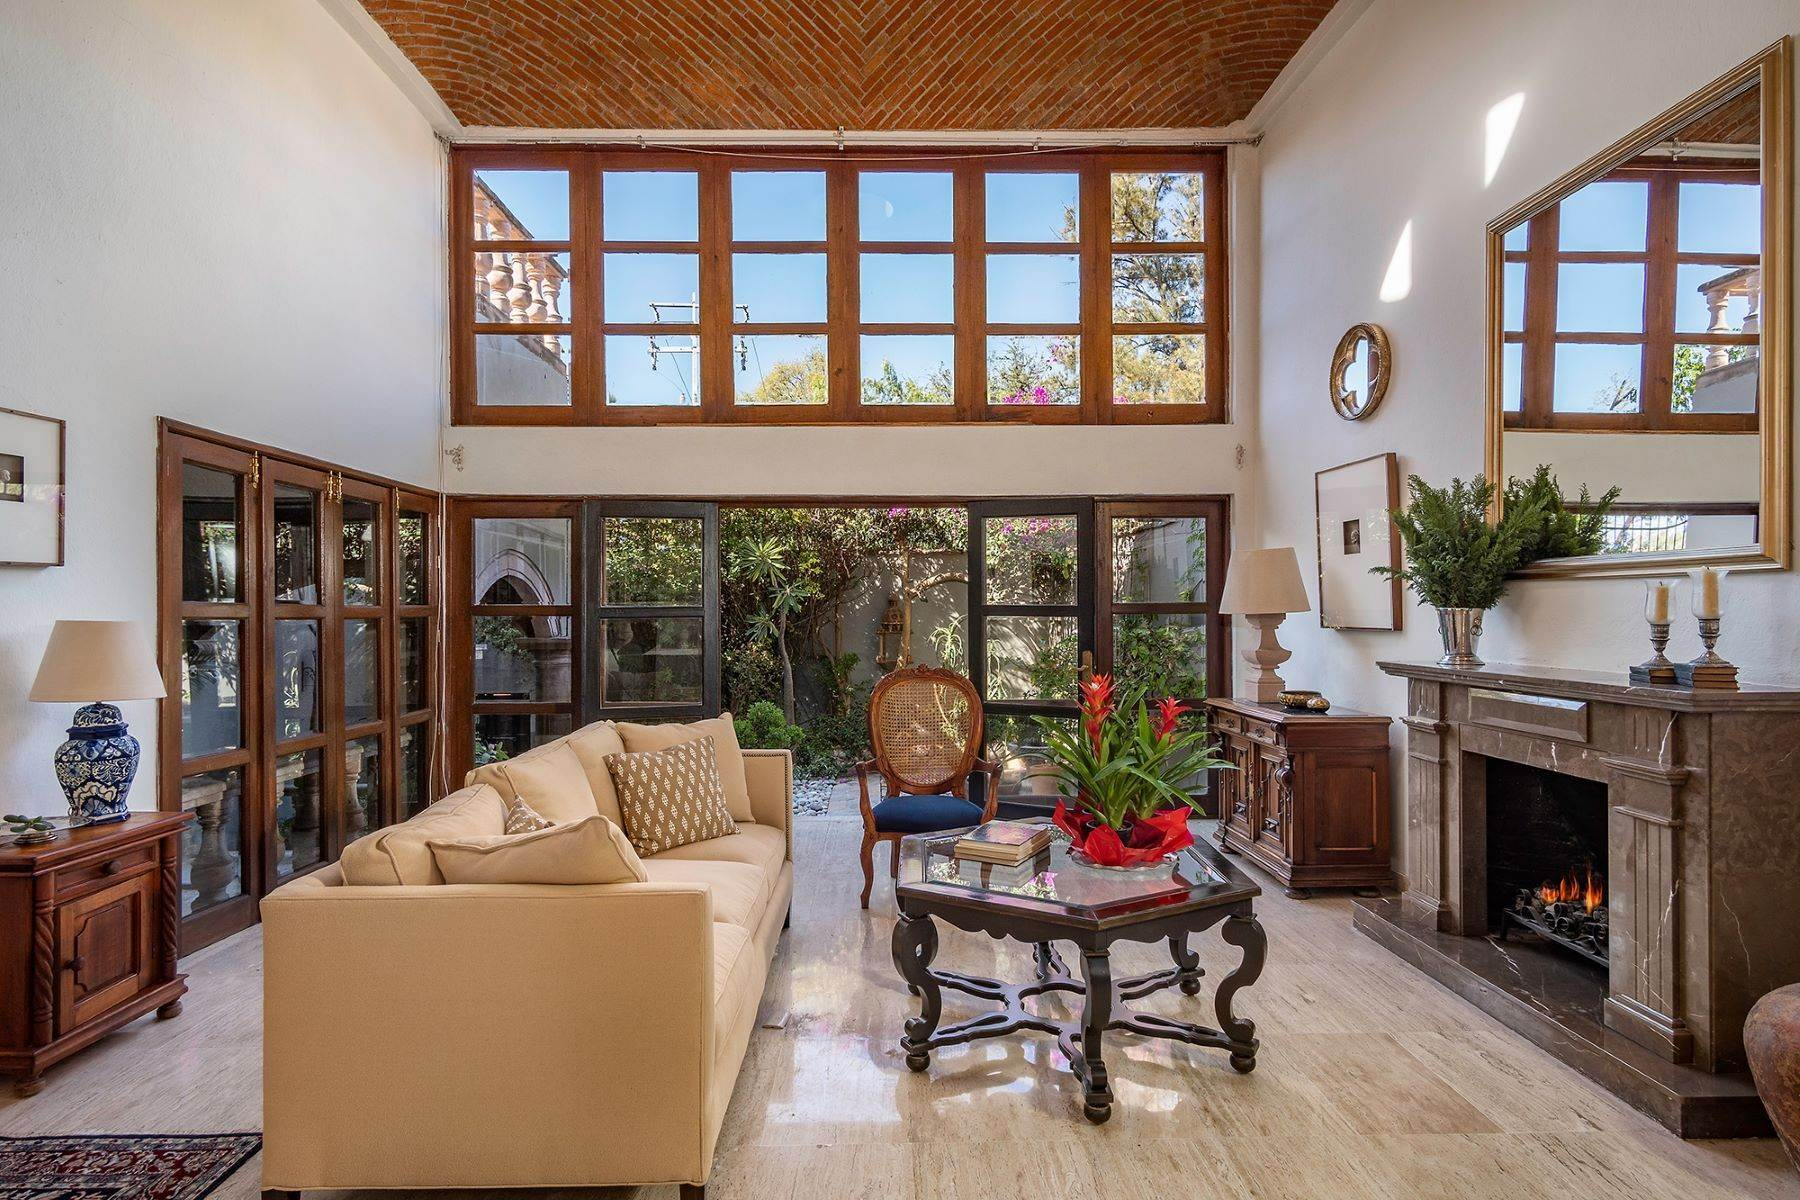 Single Family Homes for Sale at Casa Beneficiencia Beneficiencia 8 San Miguel De Allende, Guanajuato 37700 Mexico